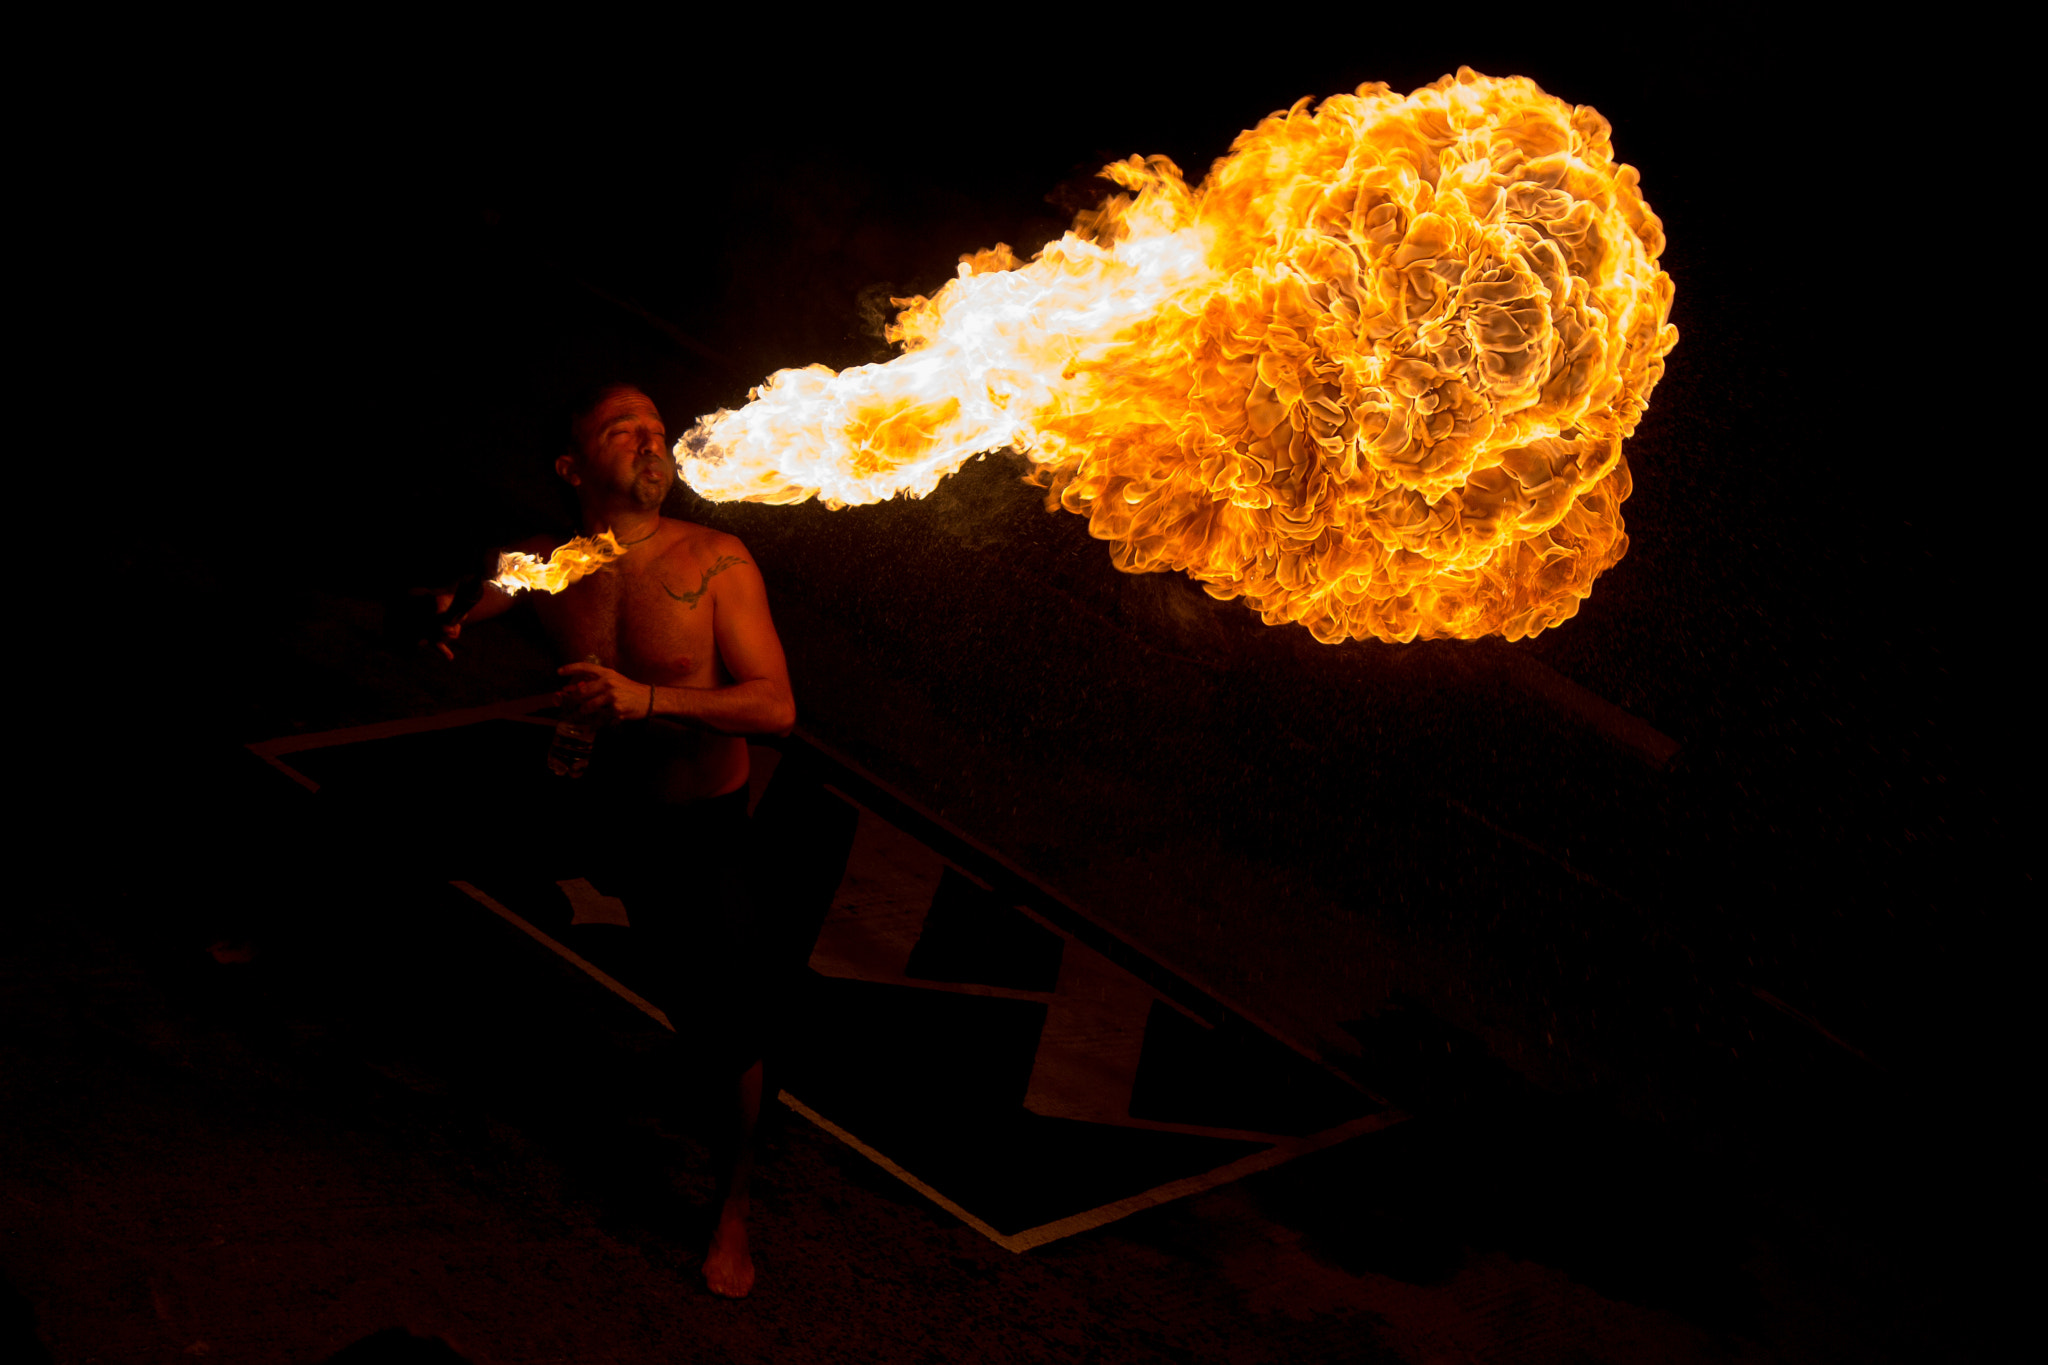 Photograph Fire Man by Salvatore Grigoli on 500px